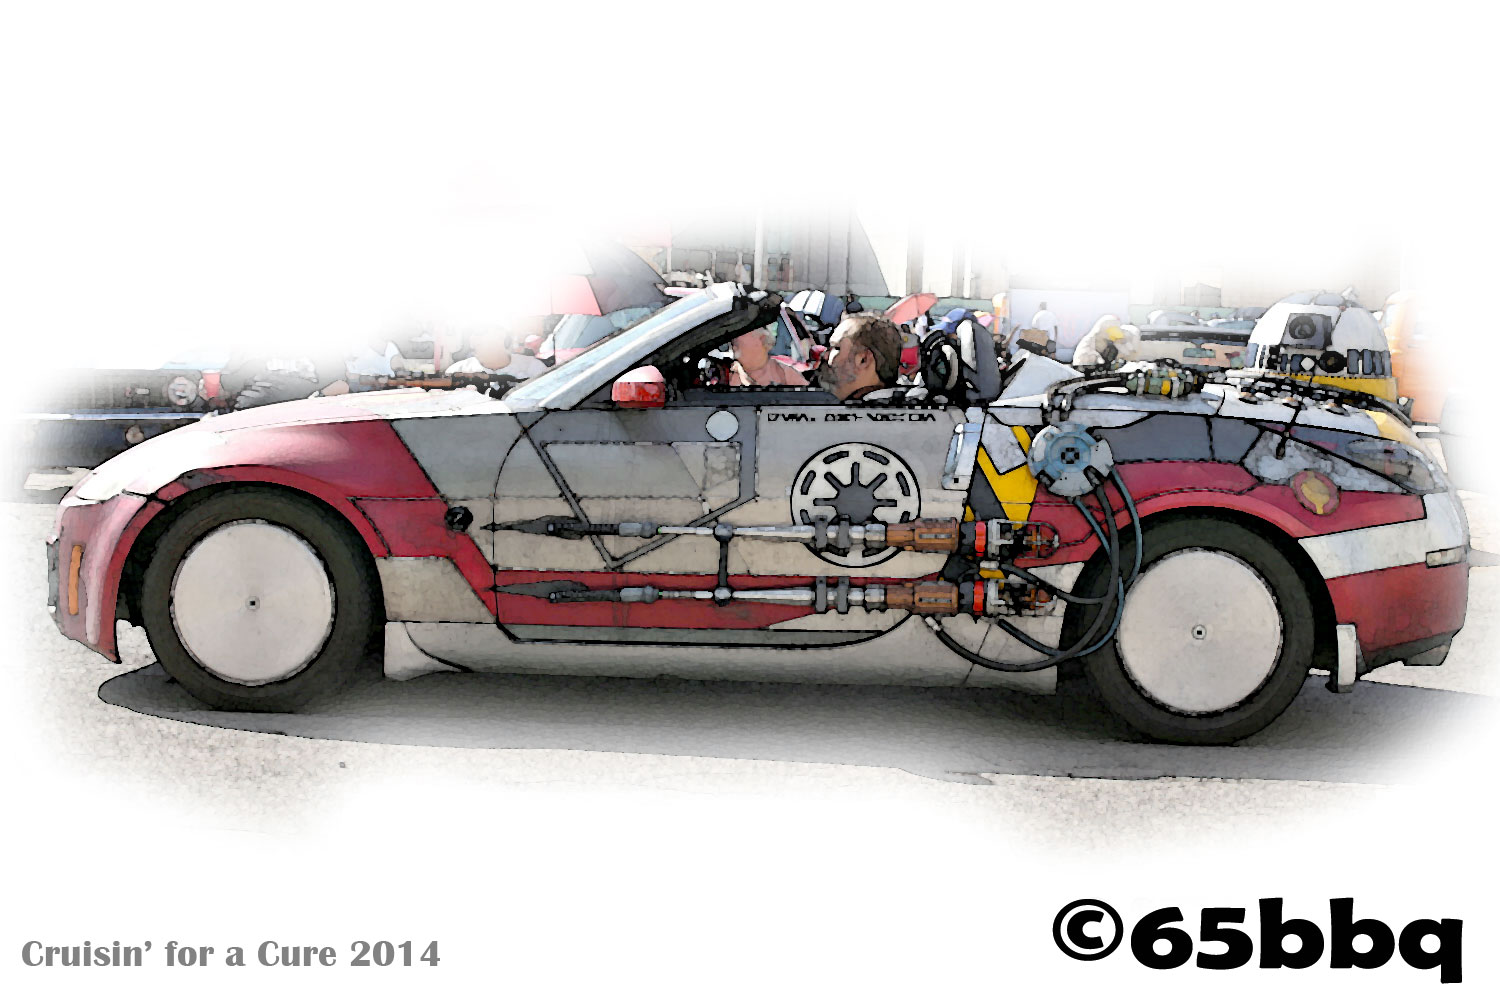 cruisin-for-a-cure-2014-65bbq-stars.jpg